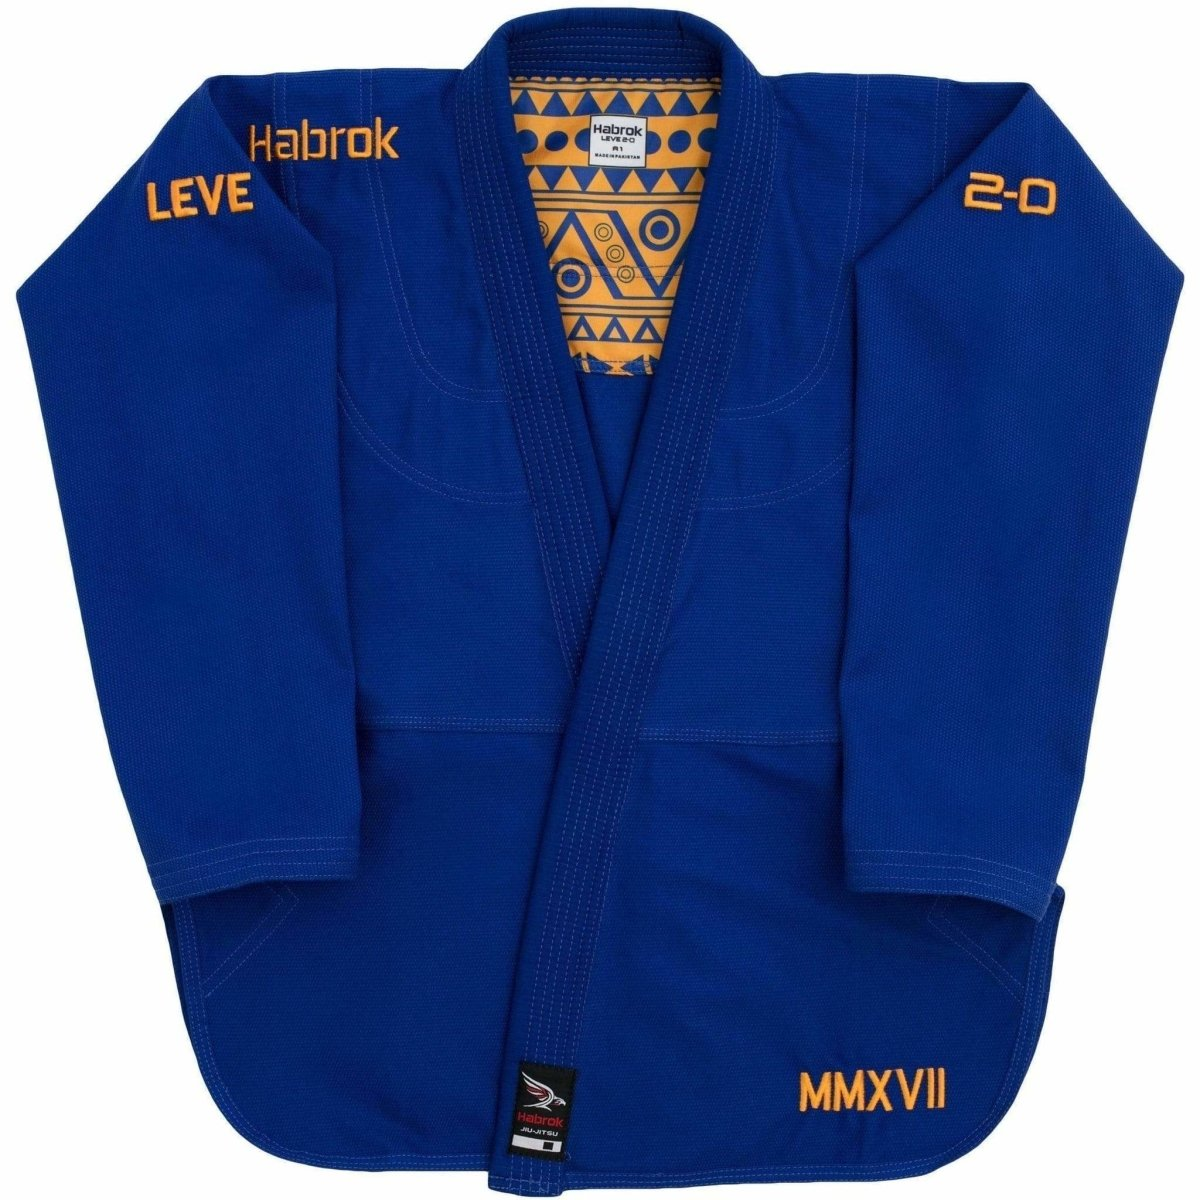 Habrok Jiu Jitsu Gi A00 / BLUE Leve 2.0 | BJJ GI Men | Premium Ultra Light Weight  | JIU JITSU